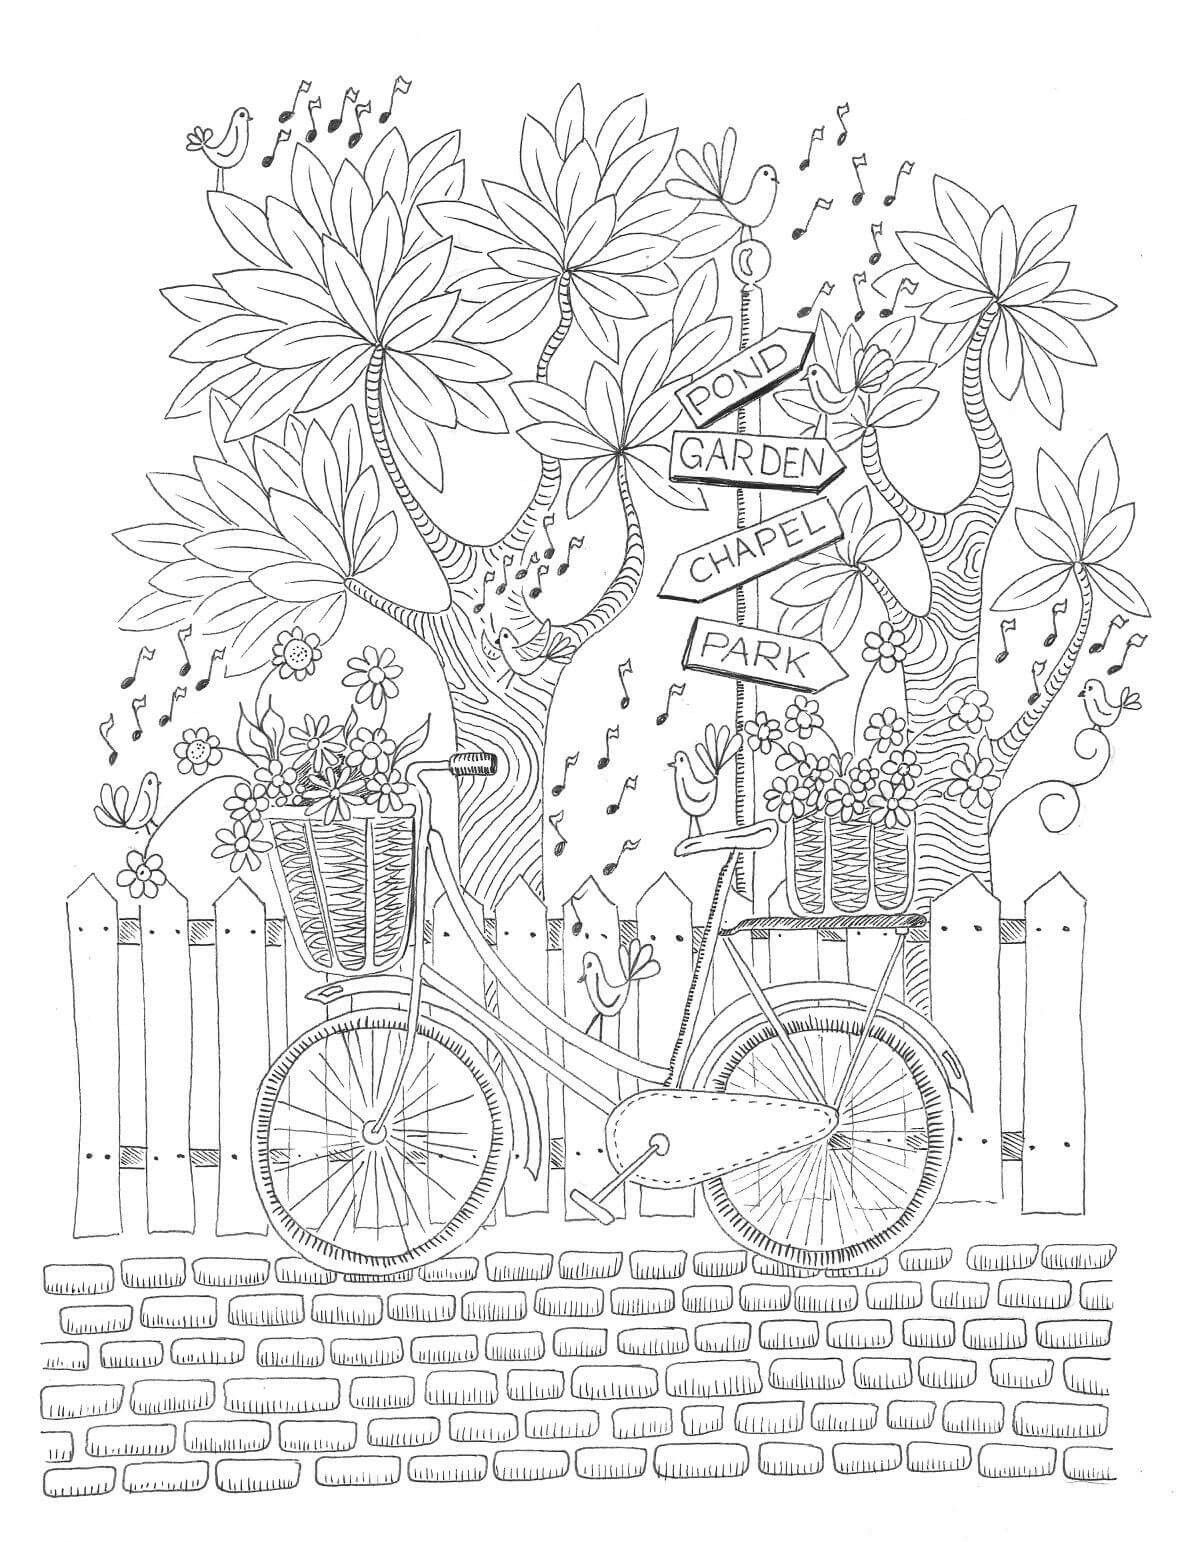 Park Bicycle Coloring Page Crayola Coloring Pages Coloring